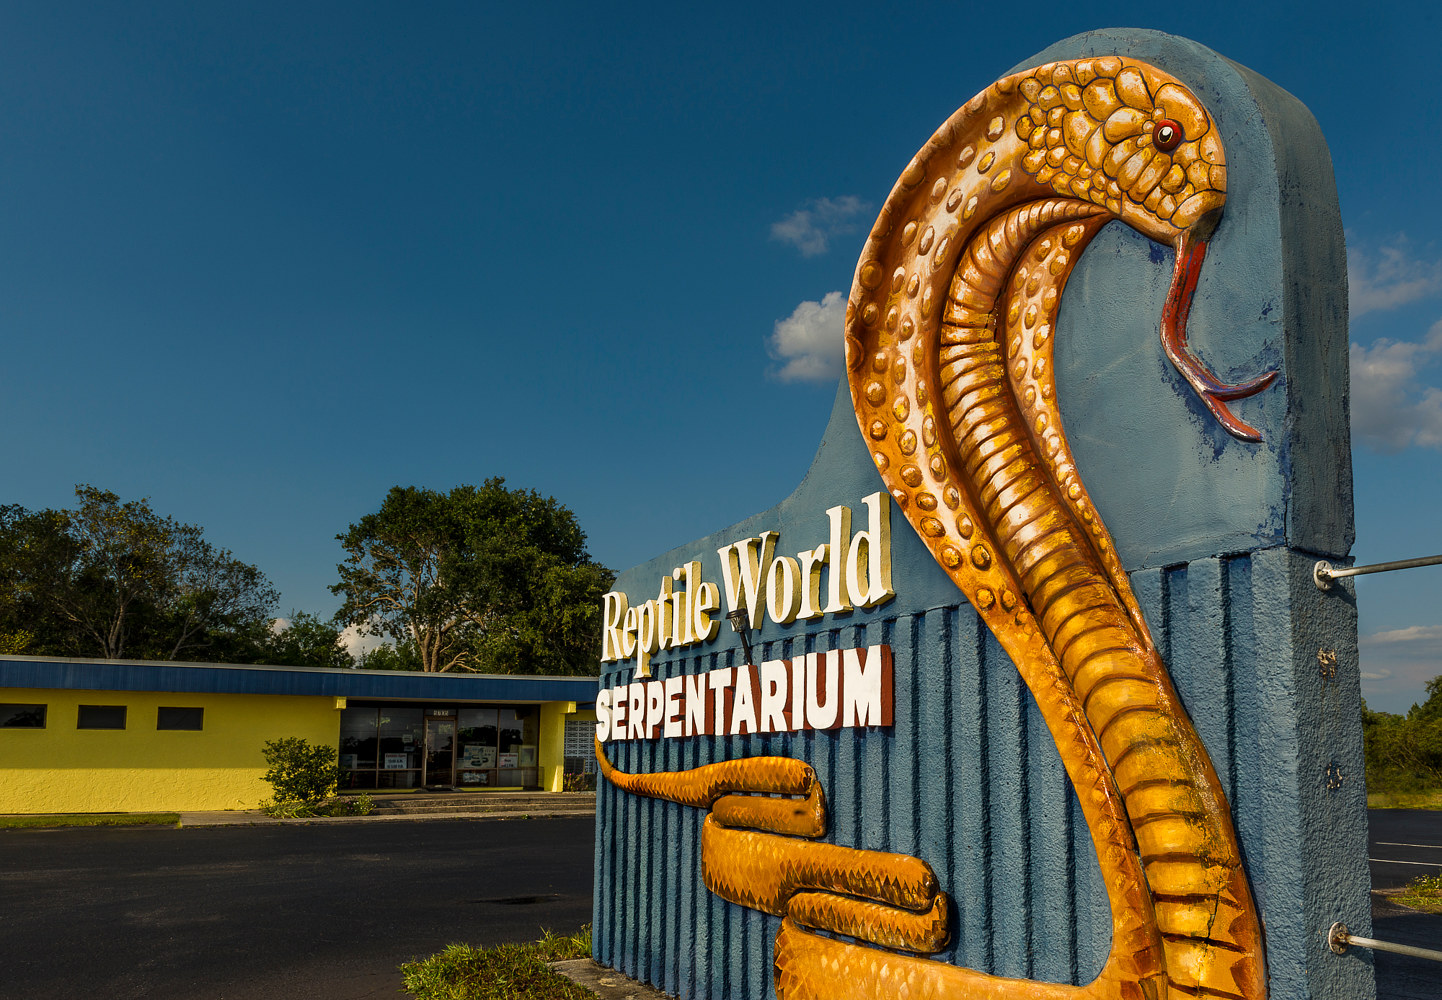 Reptile World Serpentarium - US 192  (PL52_7294C) by Gary Jones